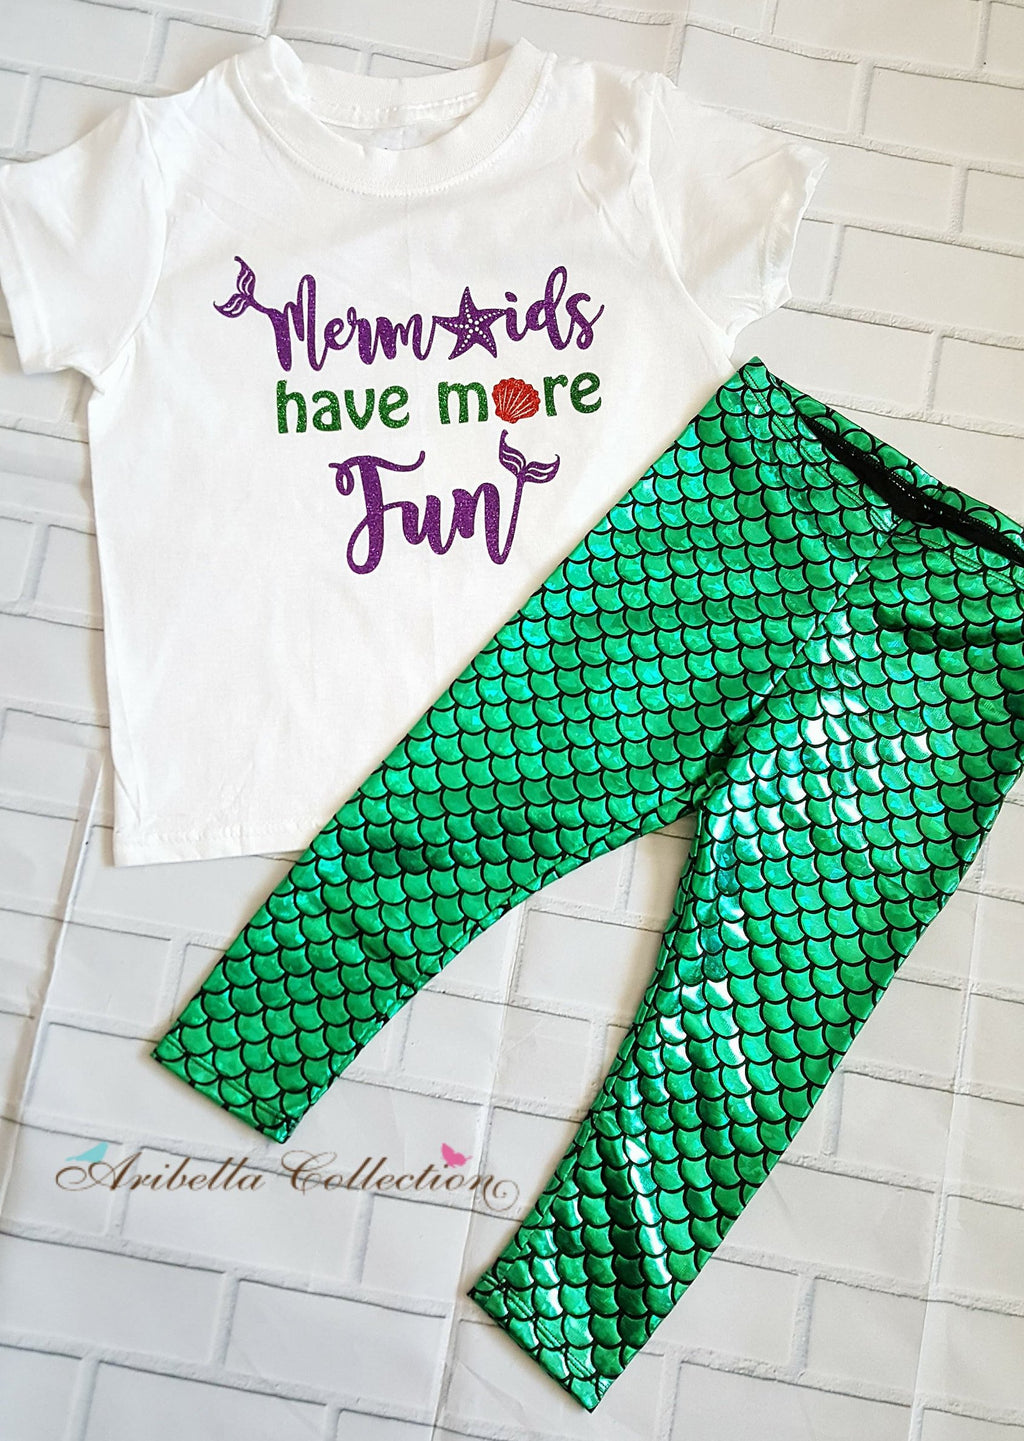 Mermaids Have More Fun Outfit Set - Glitter Bodysuit or T-shirt, Emerald Green Legging, Hair Clip Bow - Aribella Collection